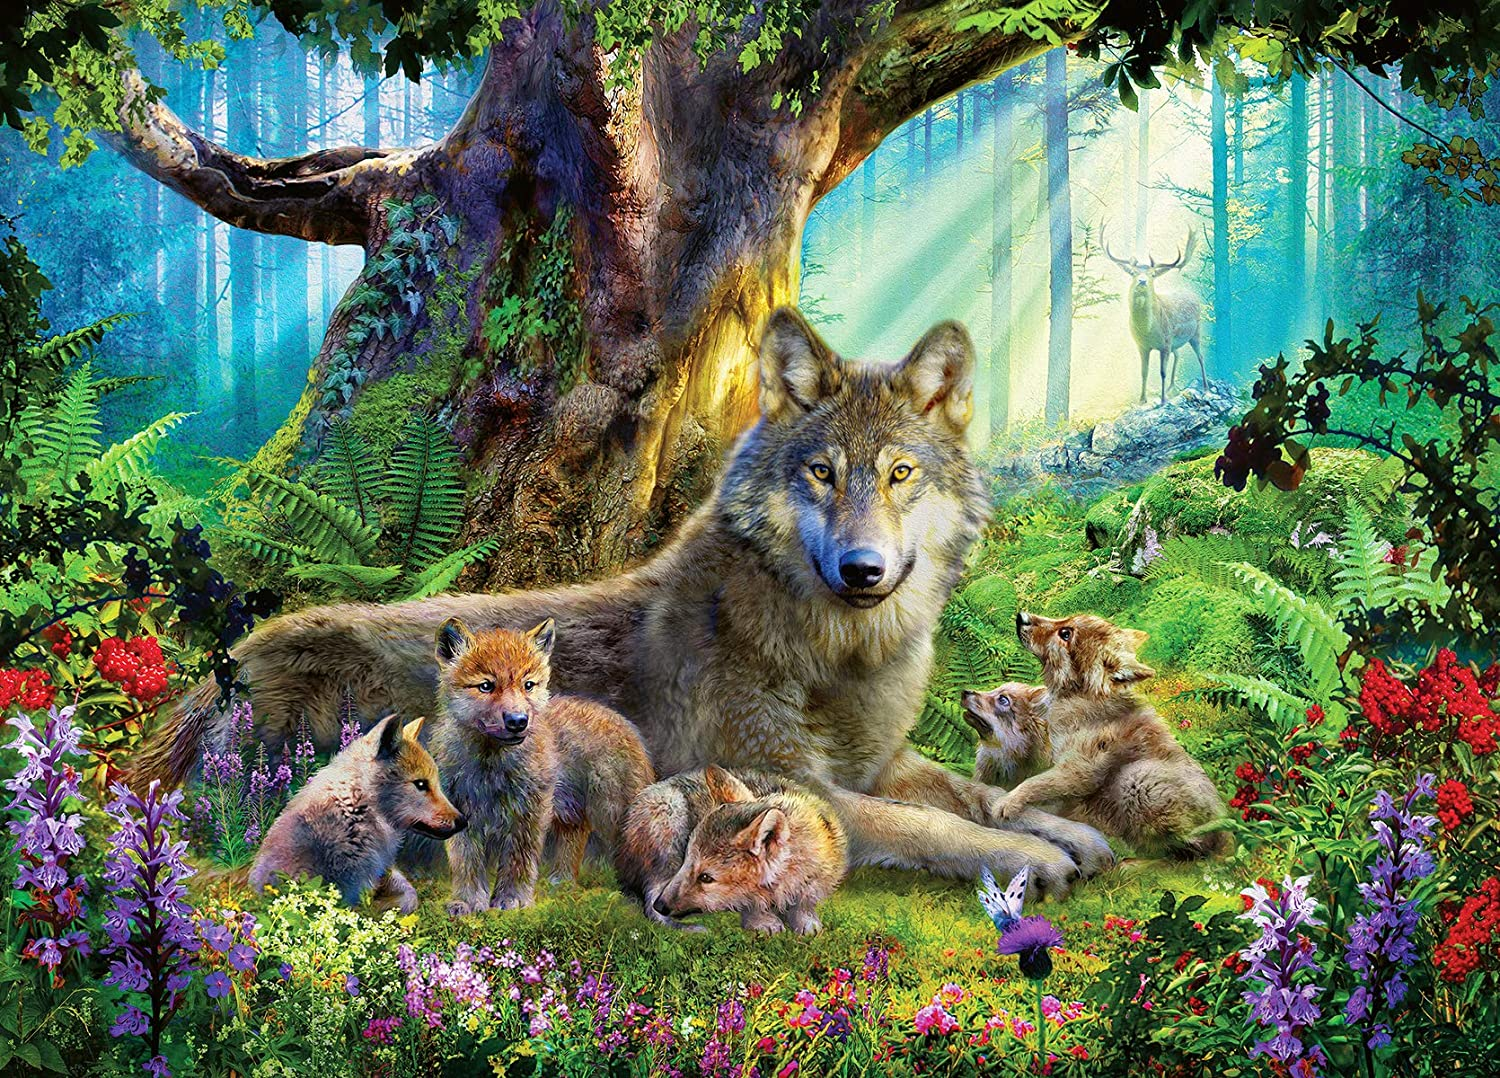 Ravensburger 15987 Wolves in The Forest 1000 Piece Puzzle for Adults - Every Piece is Unique, Softclick Technology Means Pieces Fit Together Perfectly